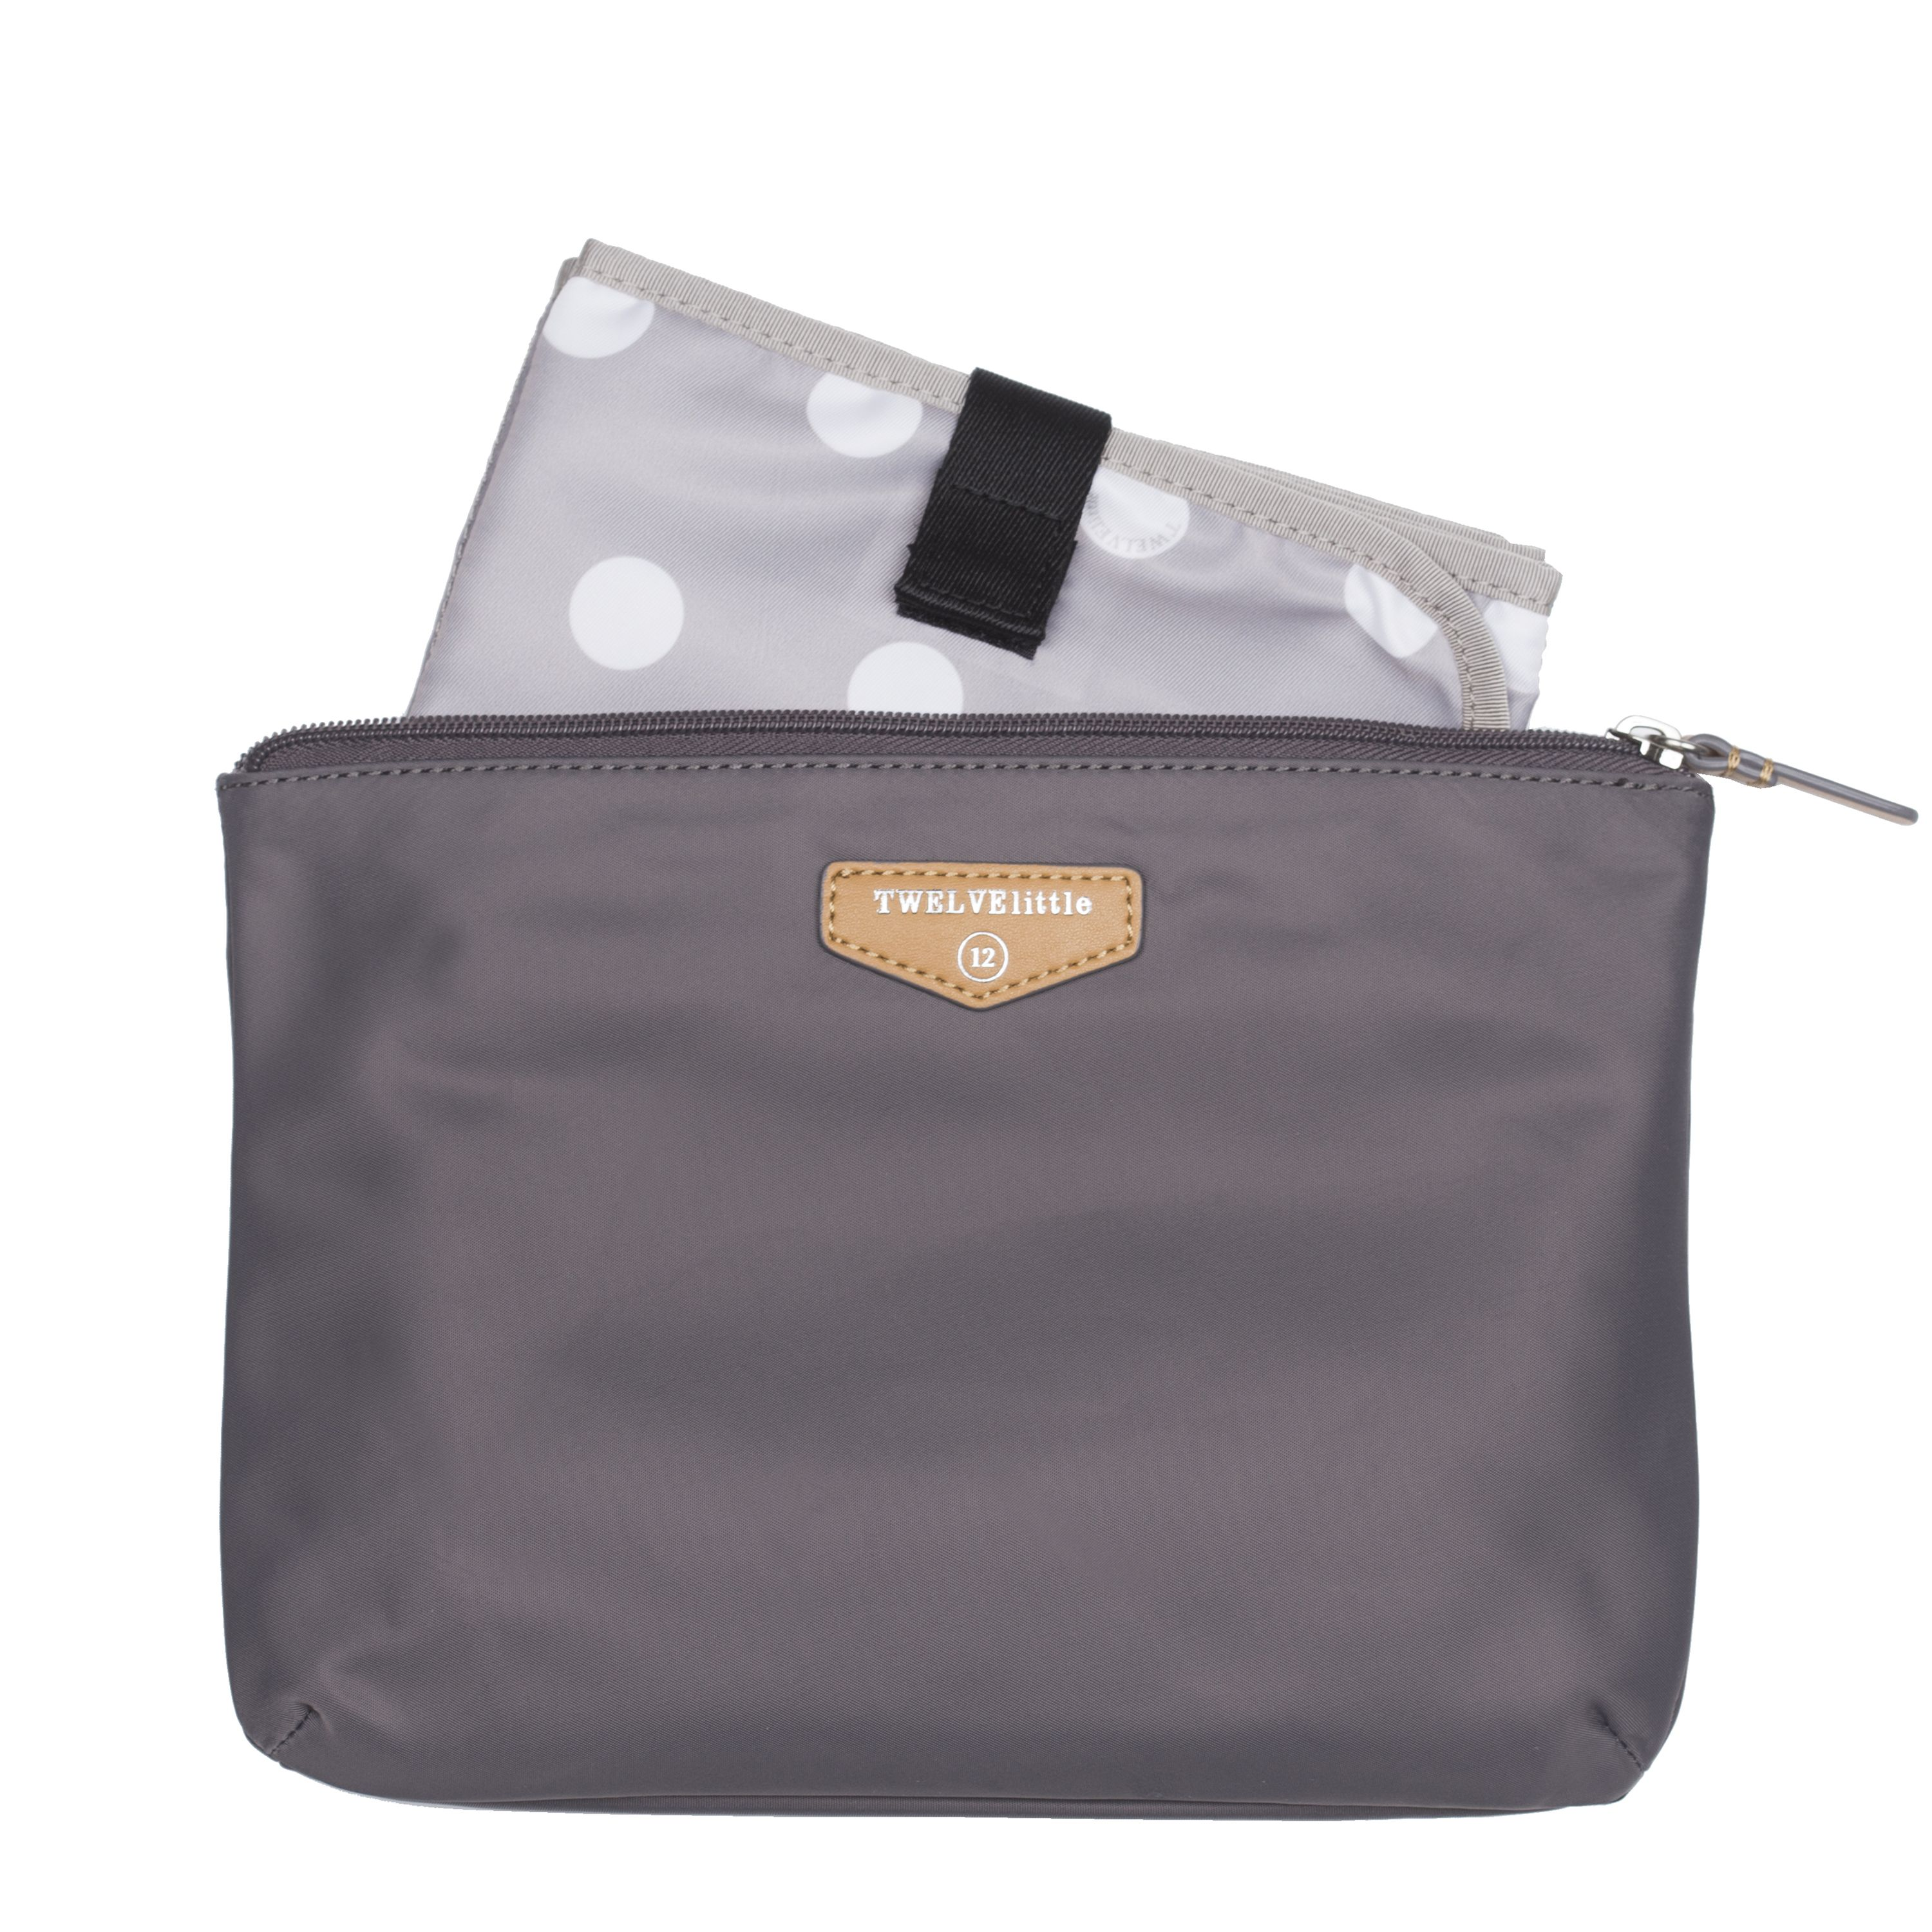 TWELVElittle Easy Diaper Pouch in Grey: Water-resistant coating on exterior and interior, comes with a diaper changing pad inside. [gray on-the-go travel kit nursing durable fashionable mommy diaper bag accessories]